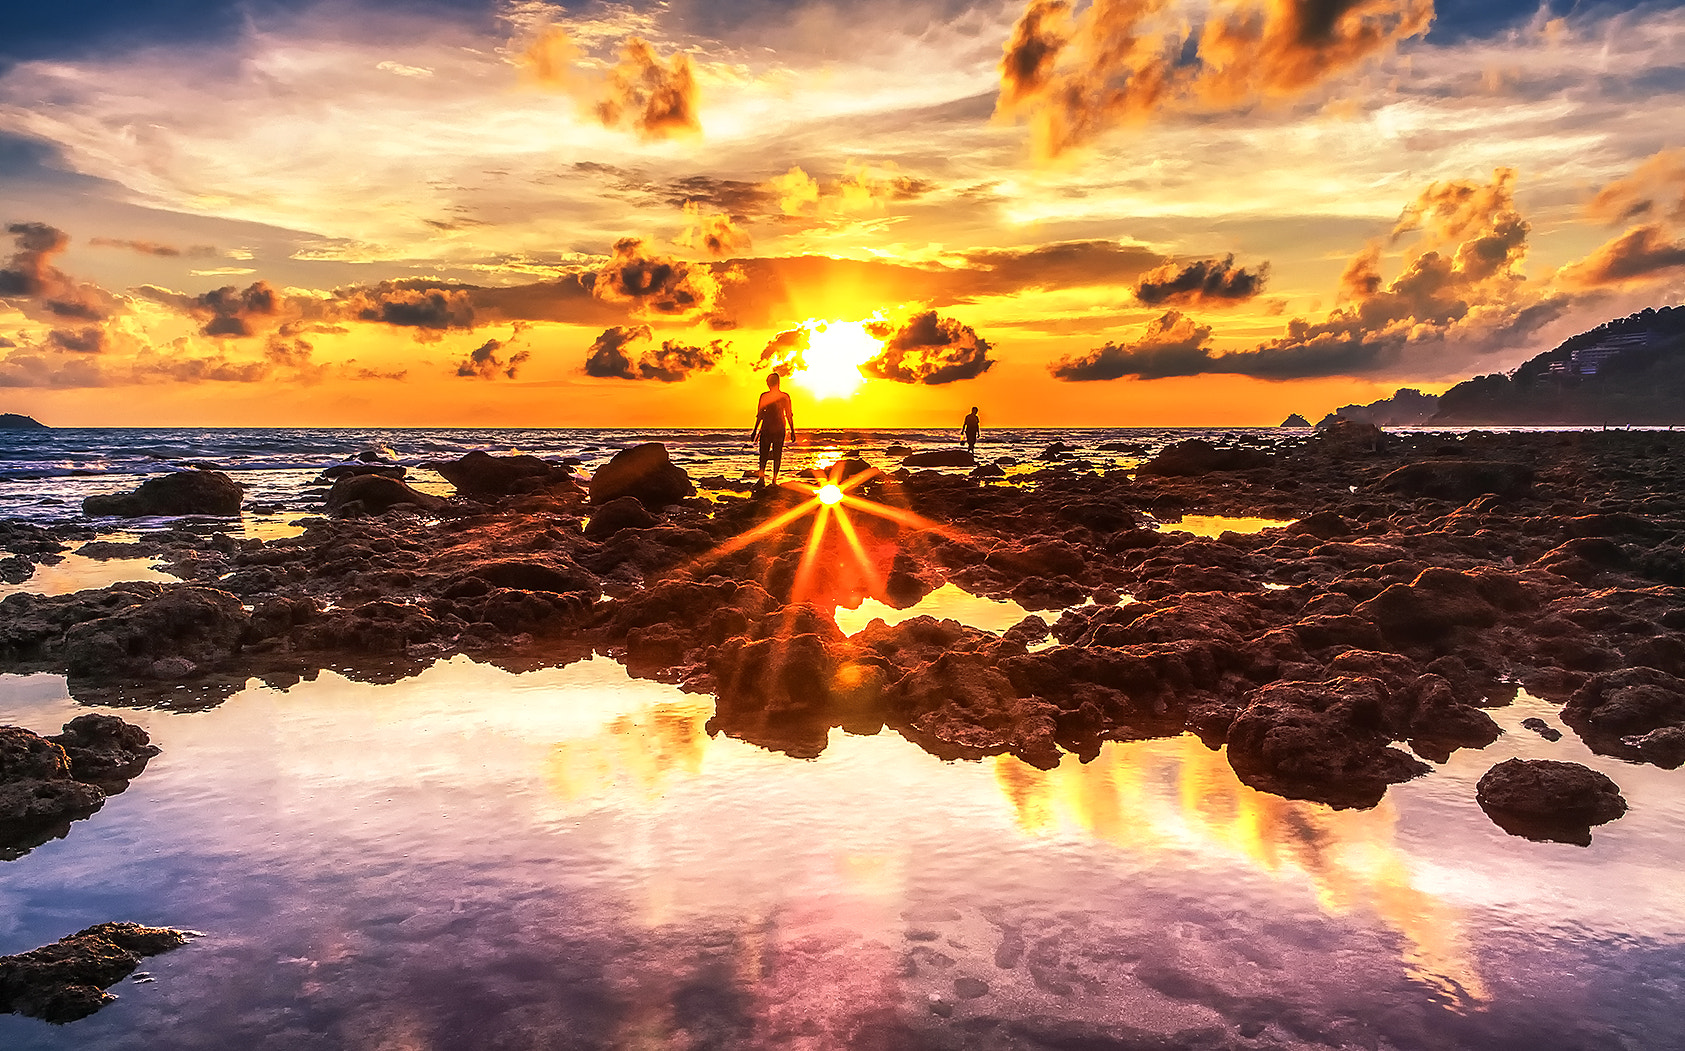 Photograph The sun in the water by Wazabi Bomb  on 500px